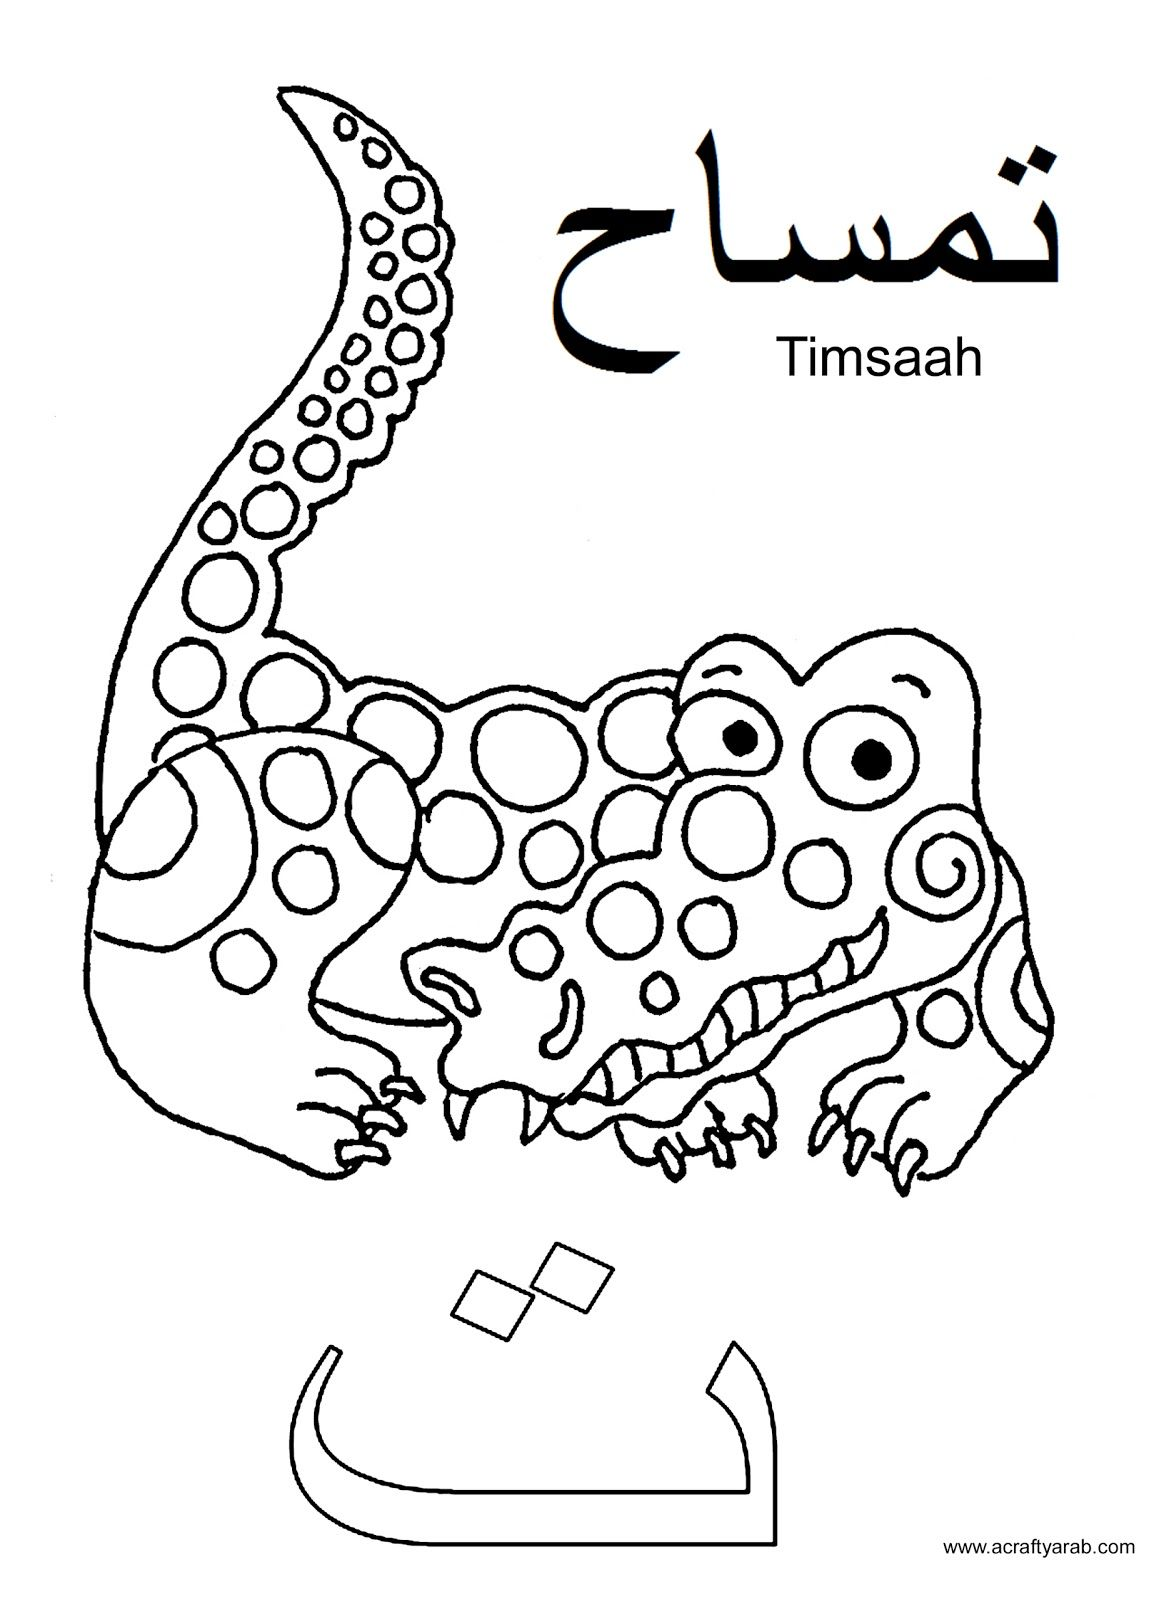 Printable Arabic Alphabet Coloring Pages